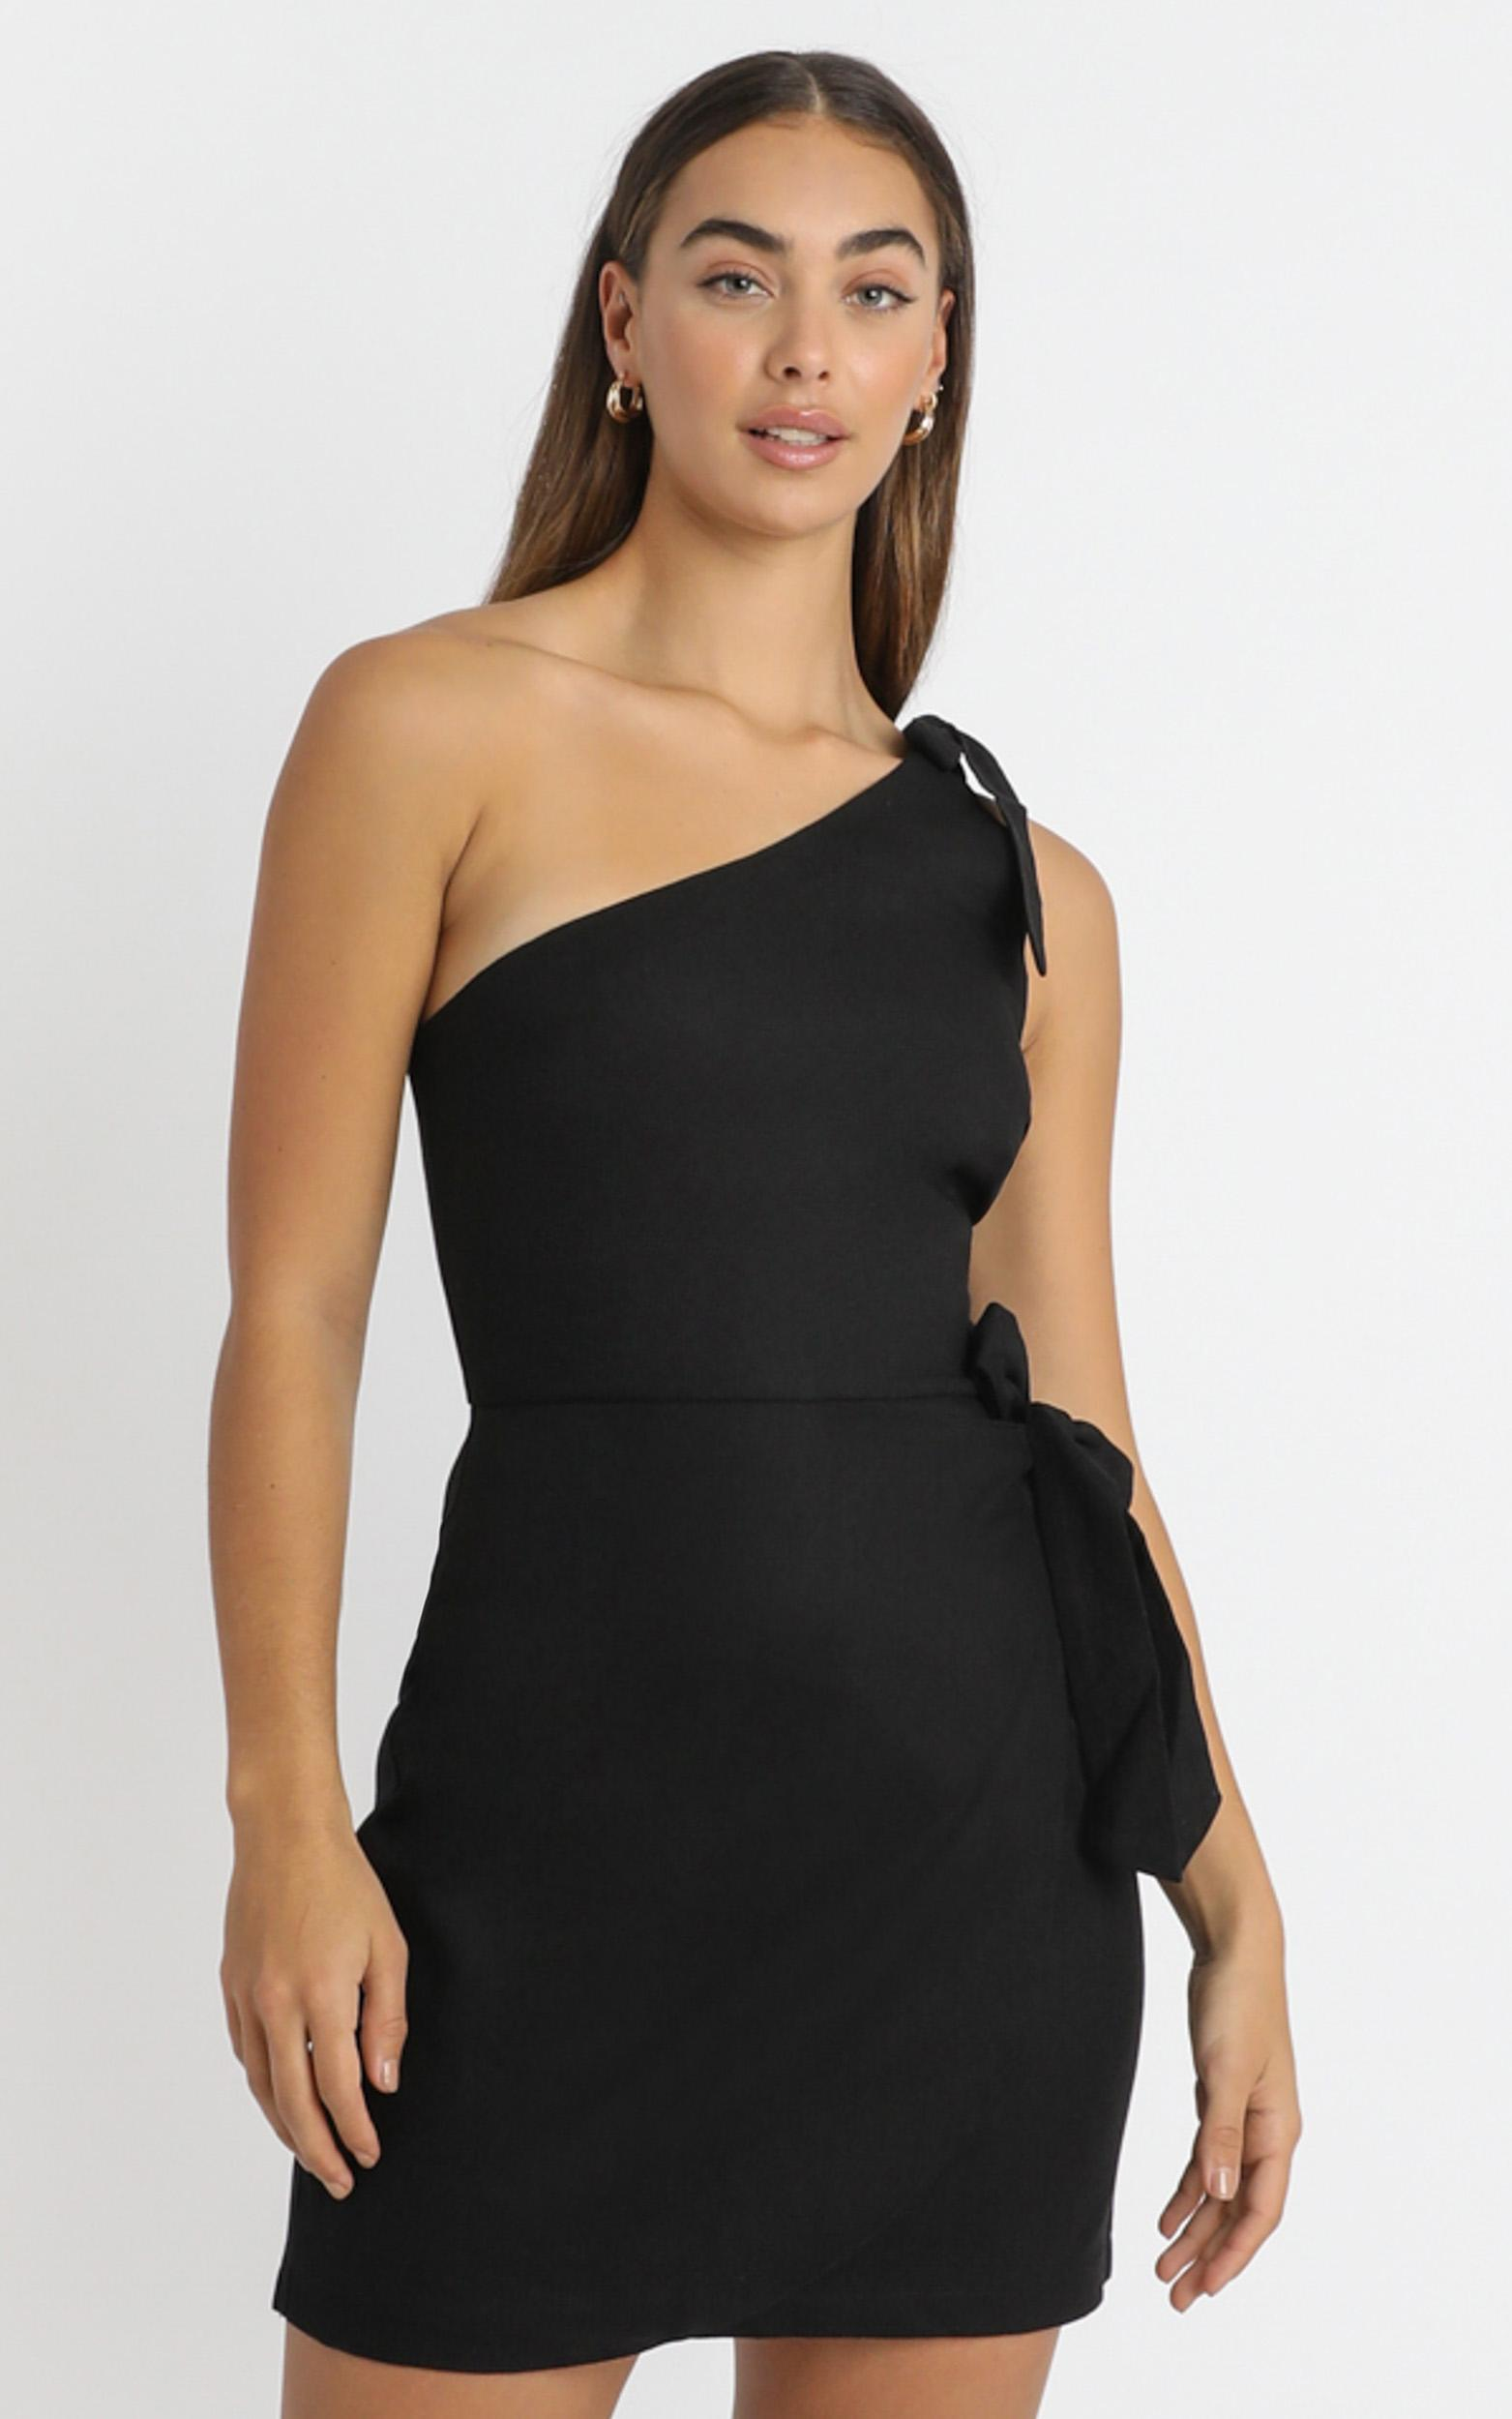 Keeping It Together Dress in black - 20 (XXXXL), Black, hi-res image number null